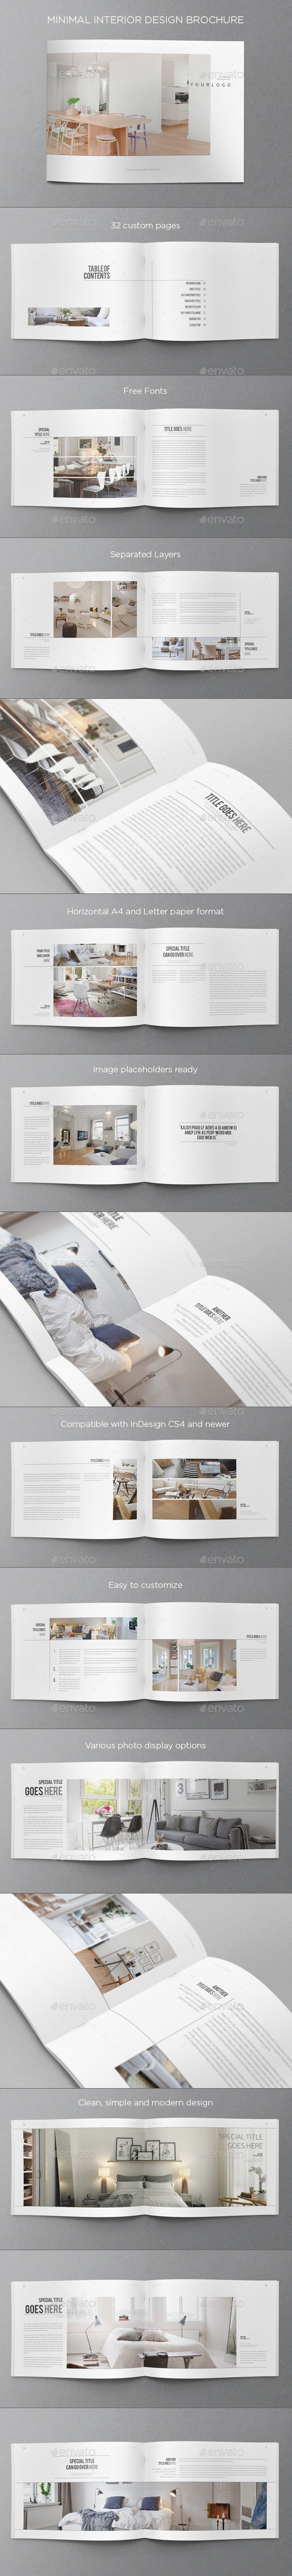 GraphicRiver Minimal Interior Design Brochure 8925678